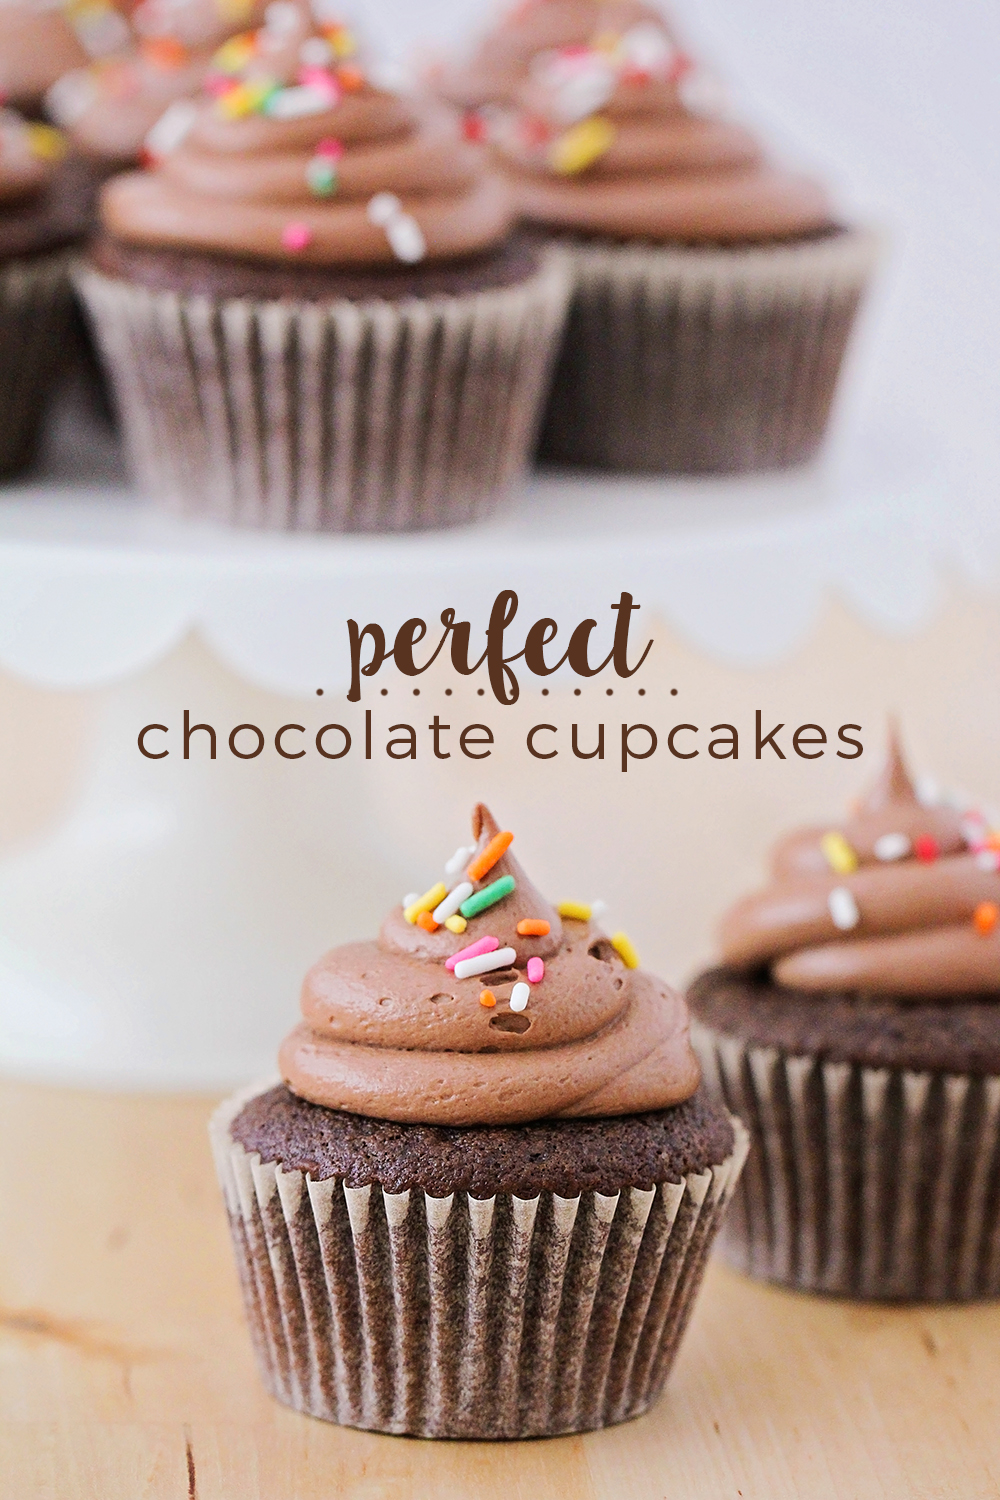 These best ever chocolate cupcakes are amazingly delicious! Tender, moist chocolate cake topped by a light and fluffy chocolate frosting. Perfect for birthdays and special occasions!